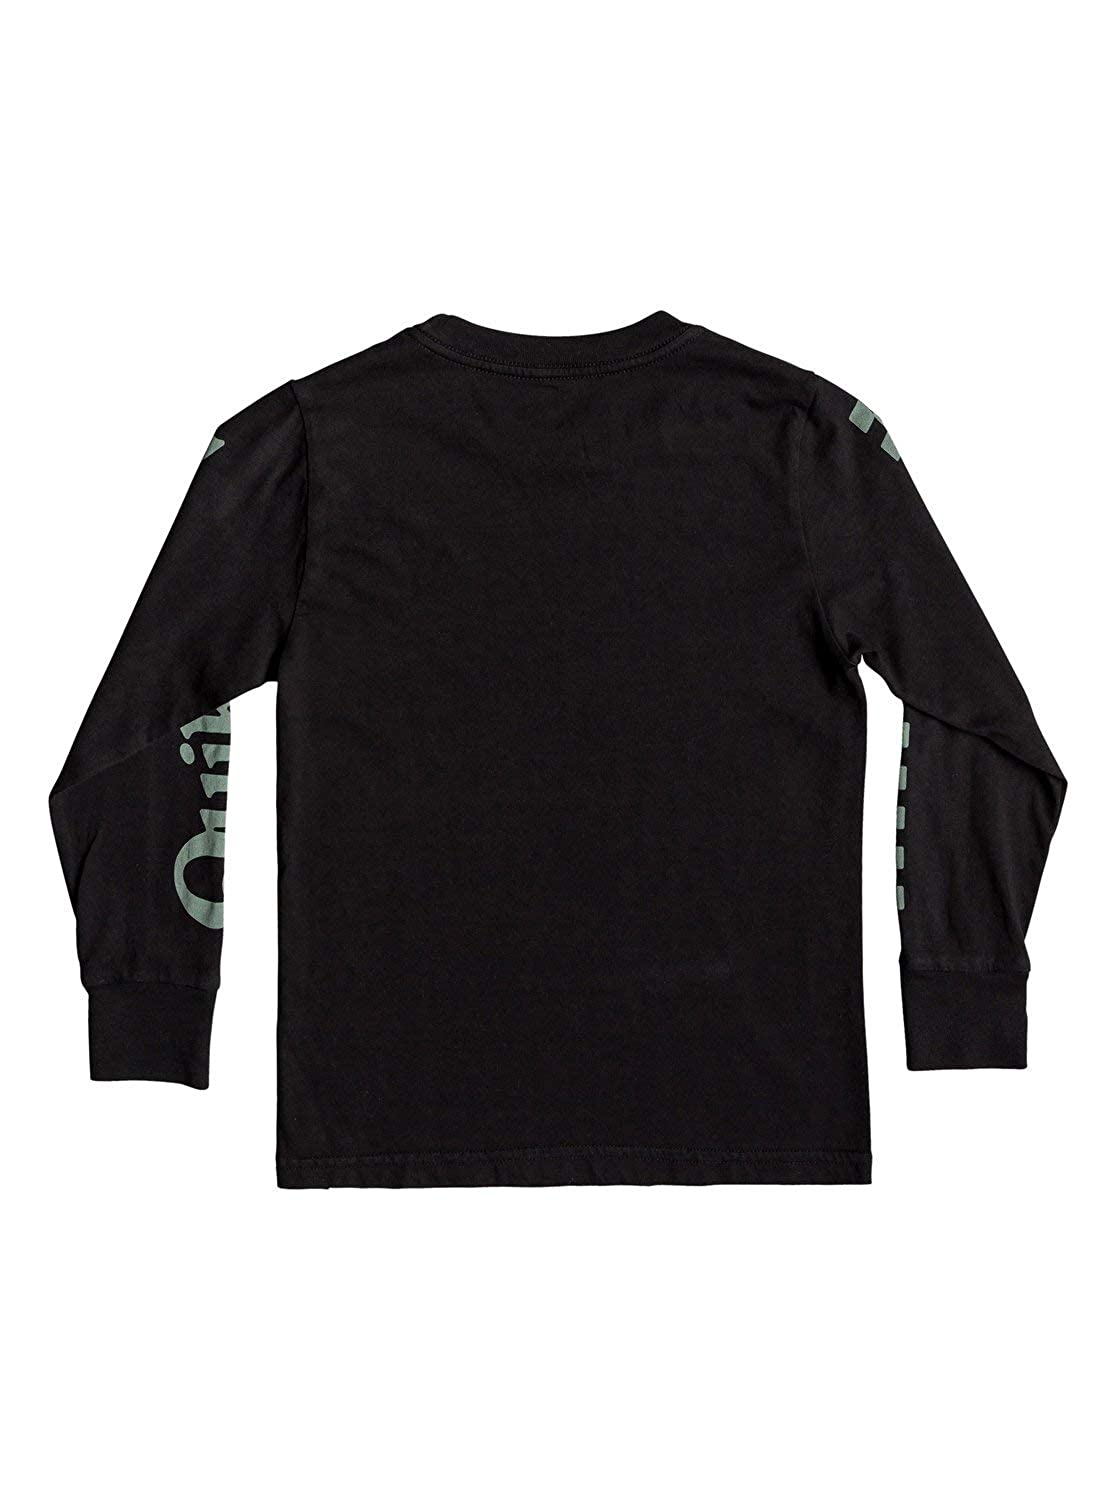 QUIKSILVER Boys Check It Long Sleeve